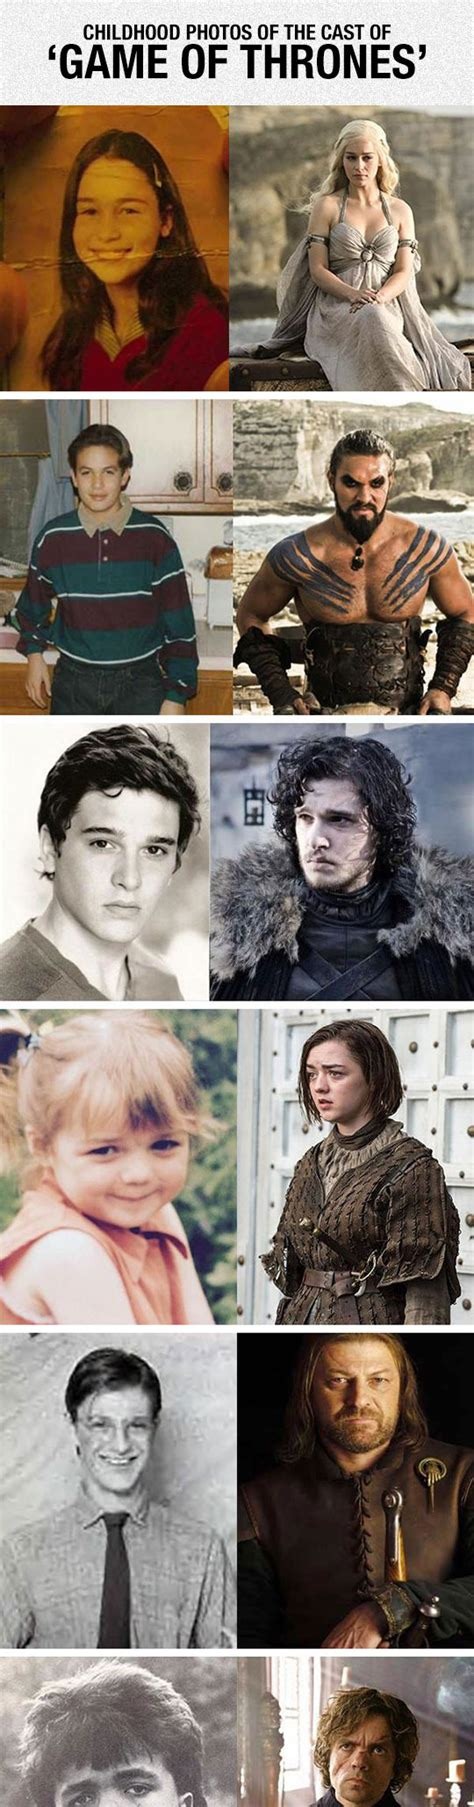 actor game game the young cast of game of thrones